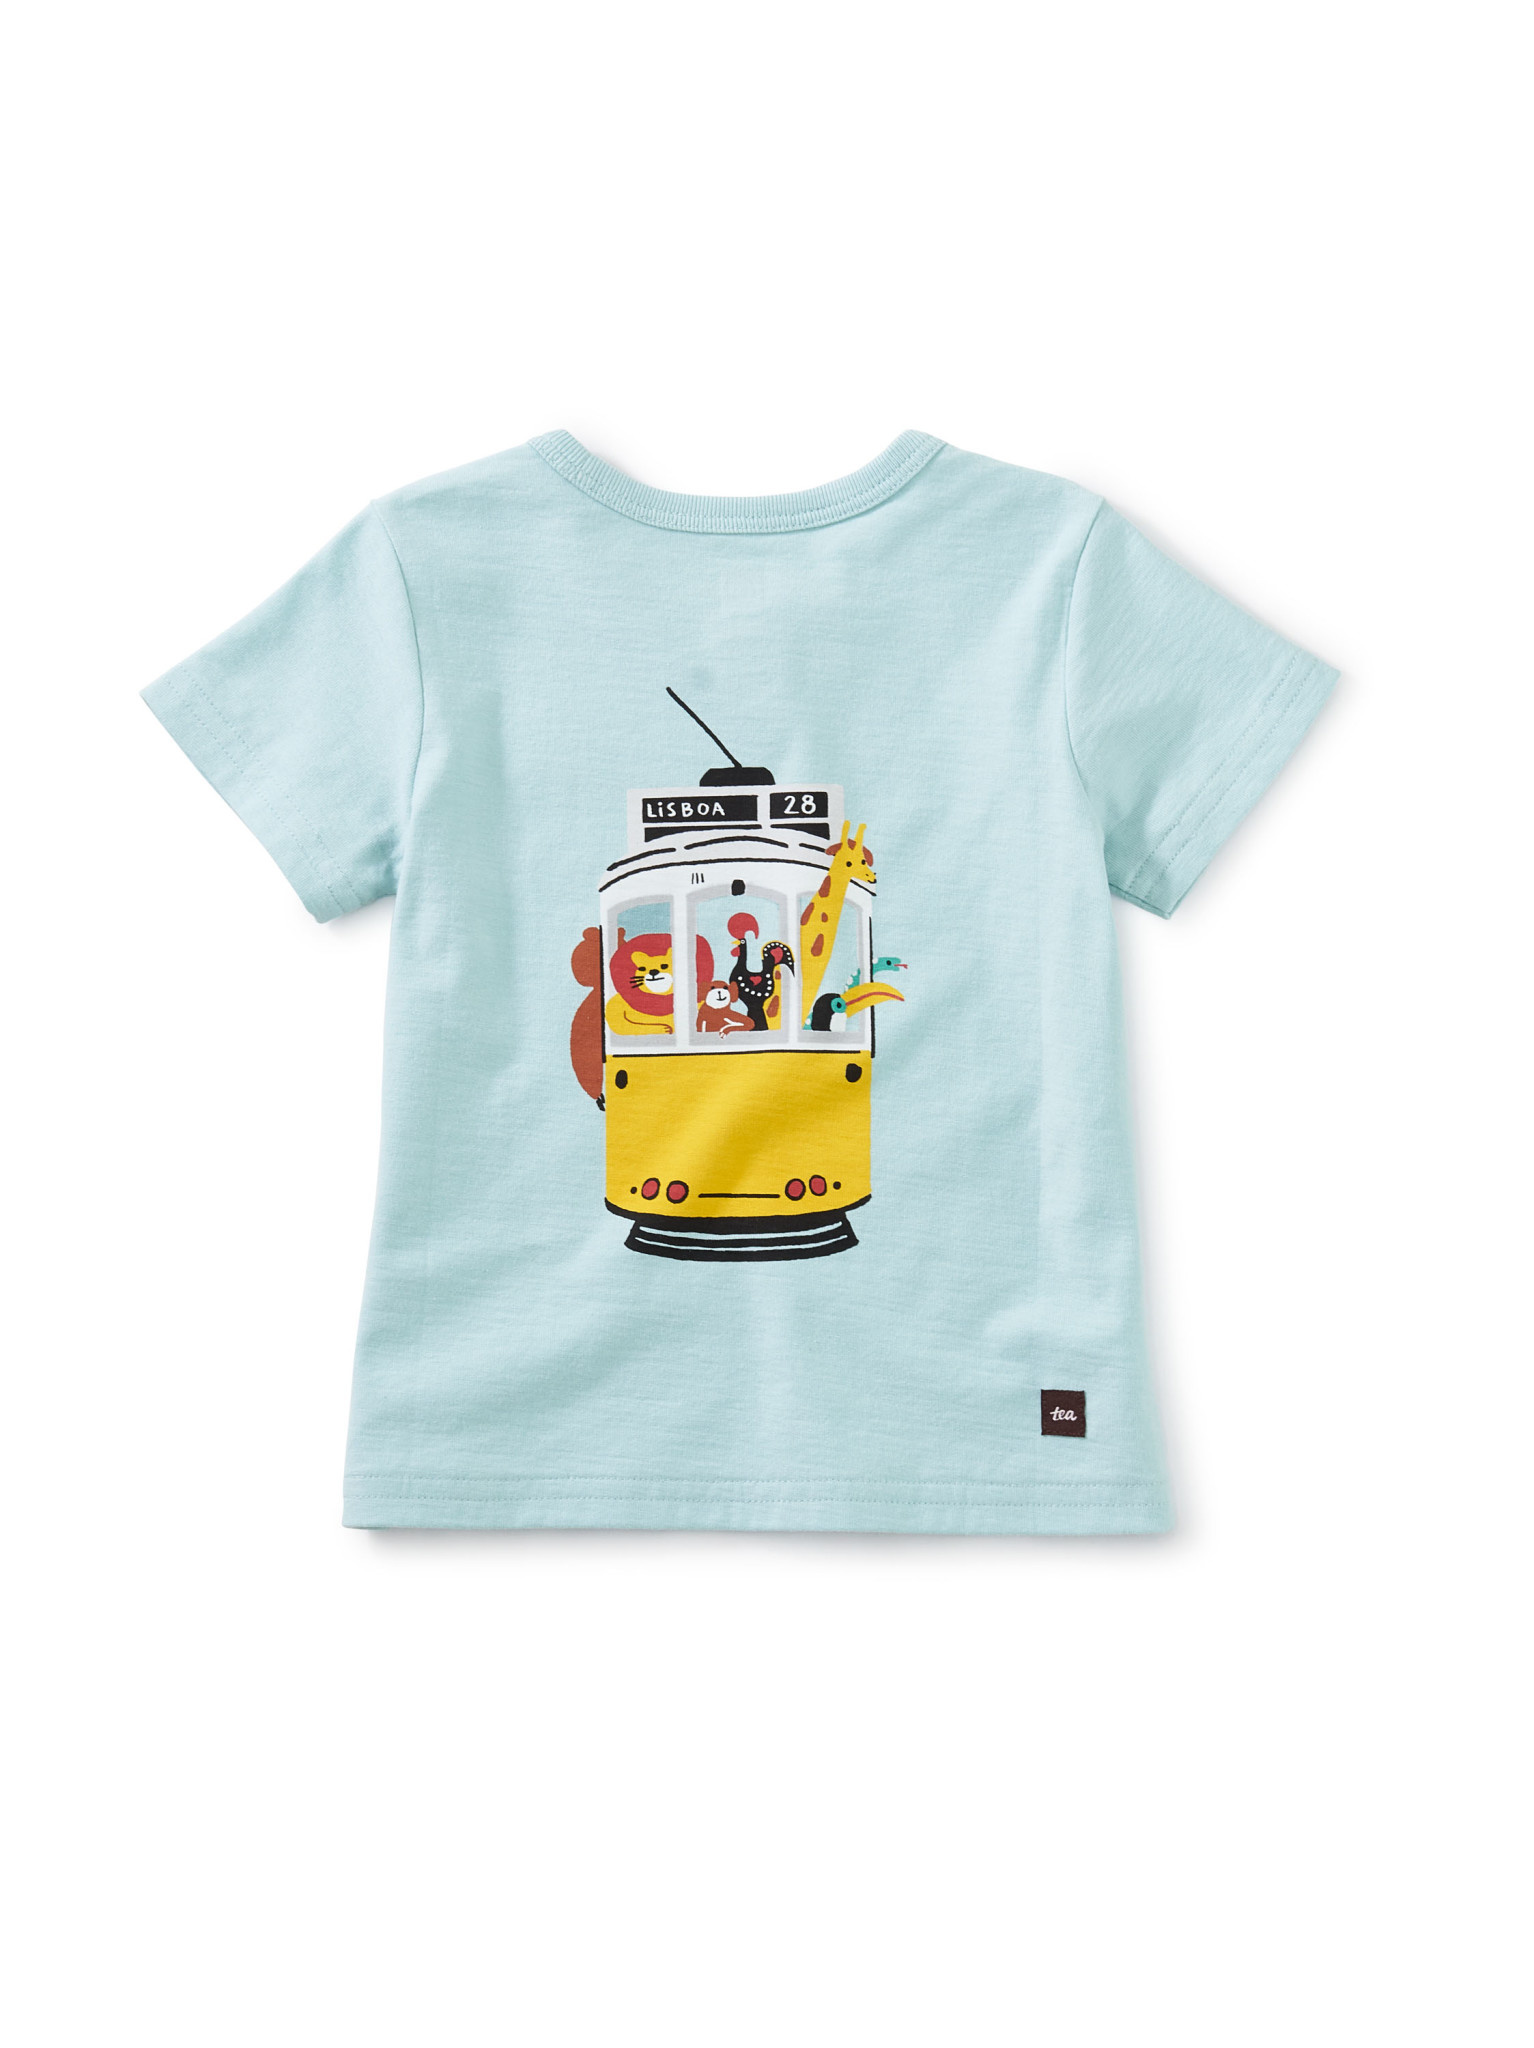 Tea Collection Martina Manyà Baby Graphic Tee